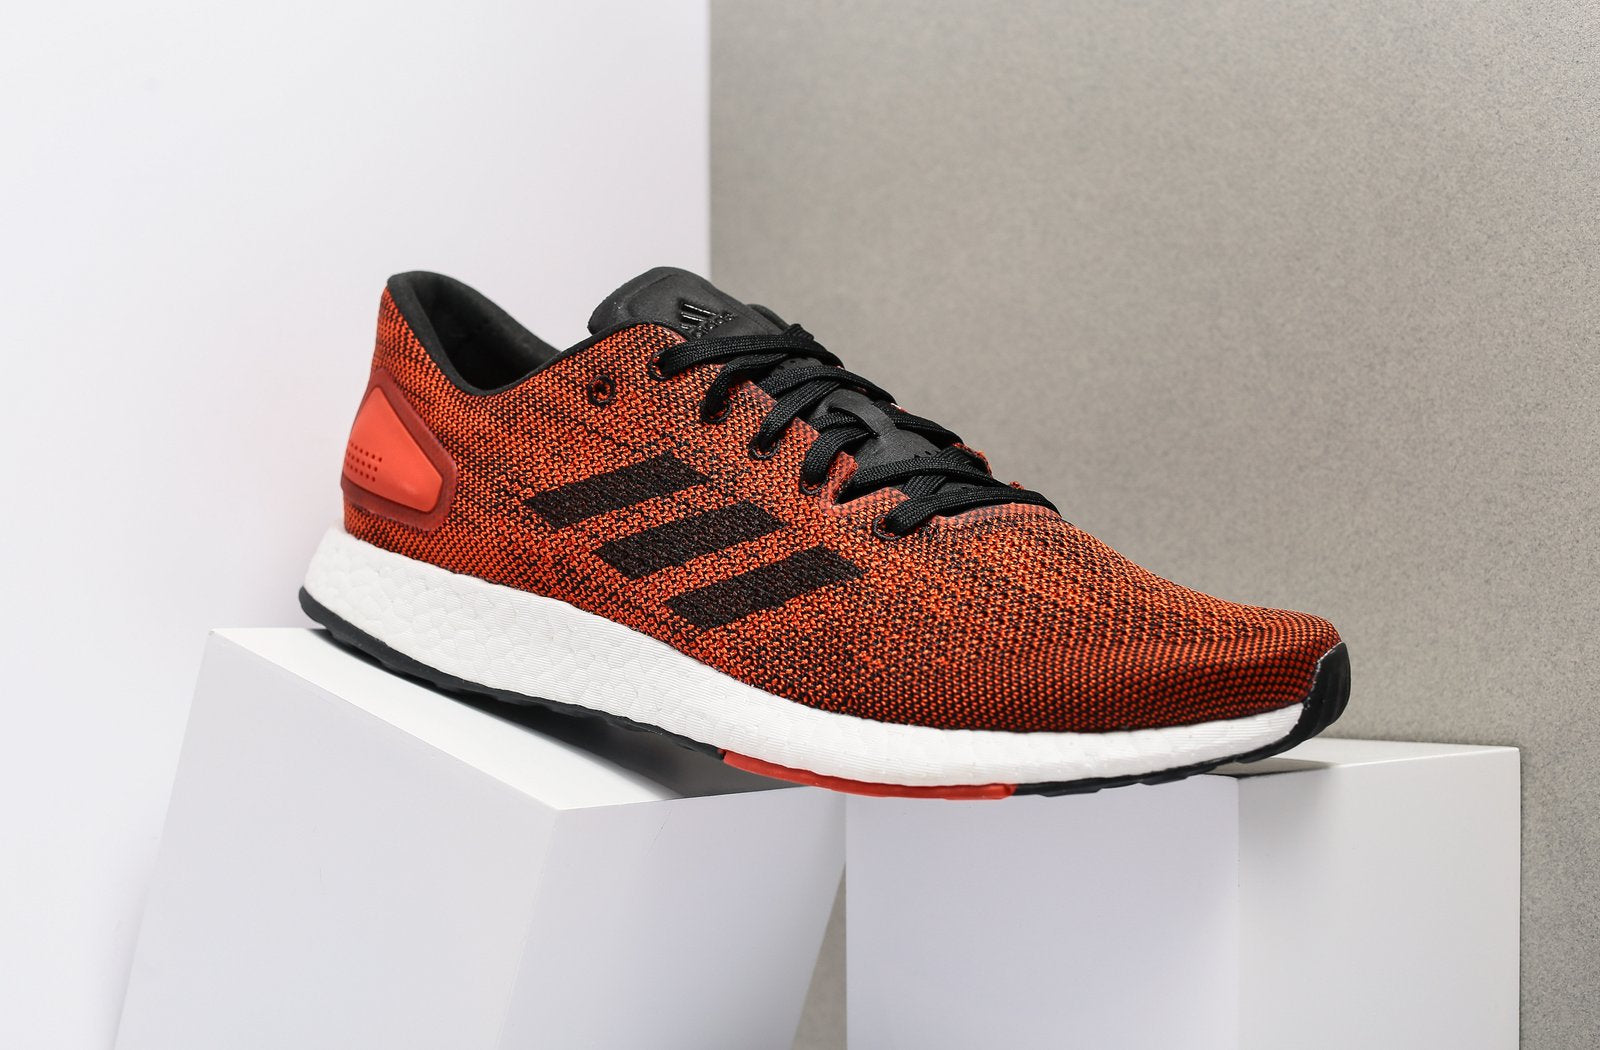 f7100a692cef39 adidas pure boost dpr cheap black white and orange shoes